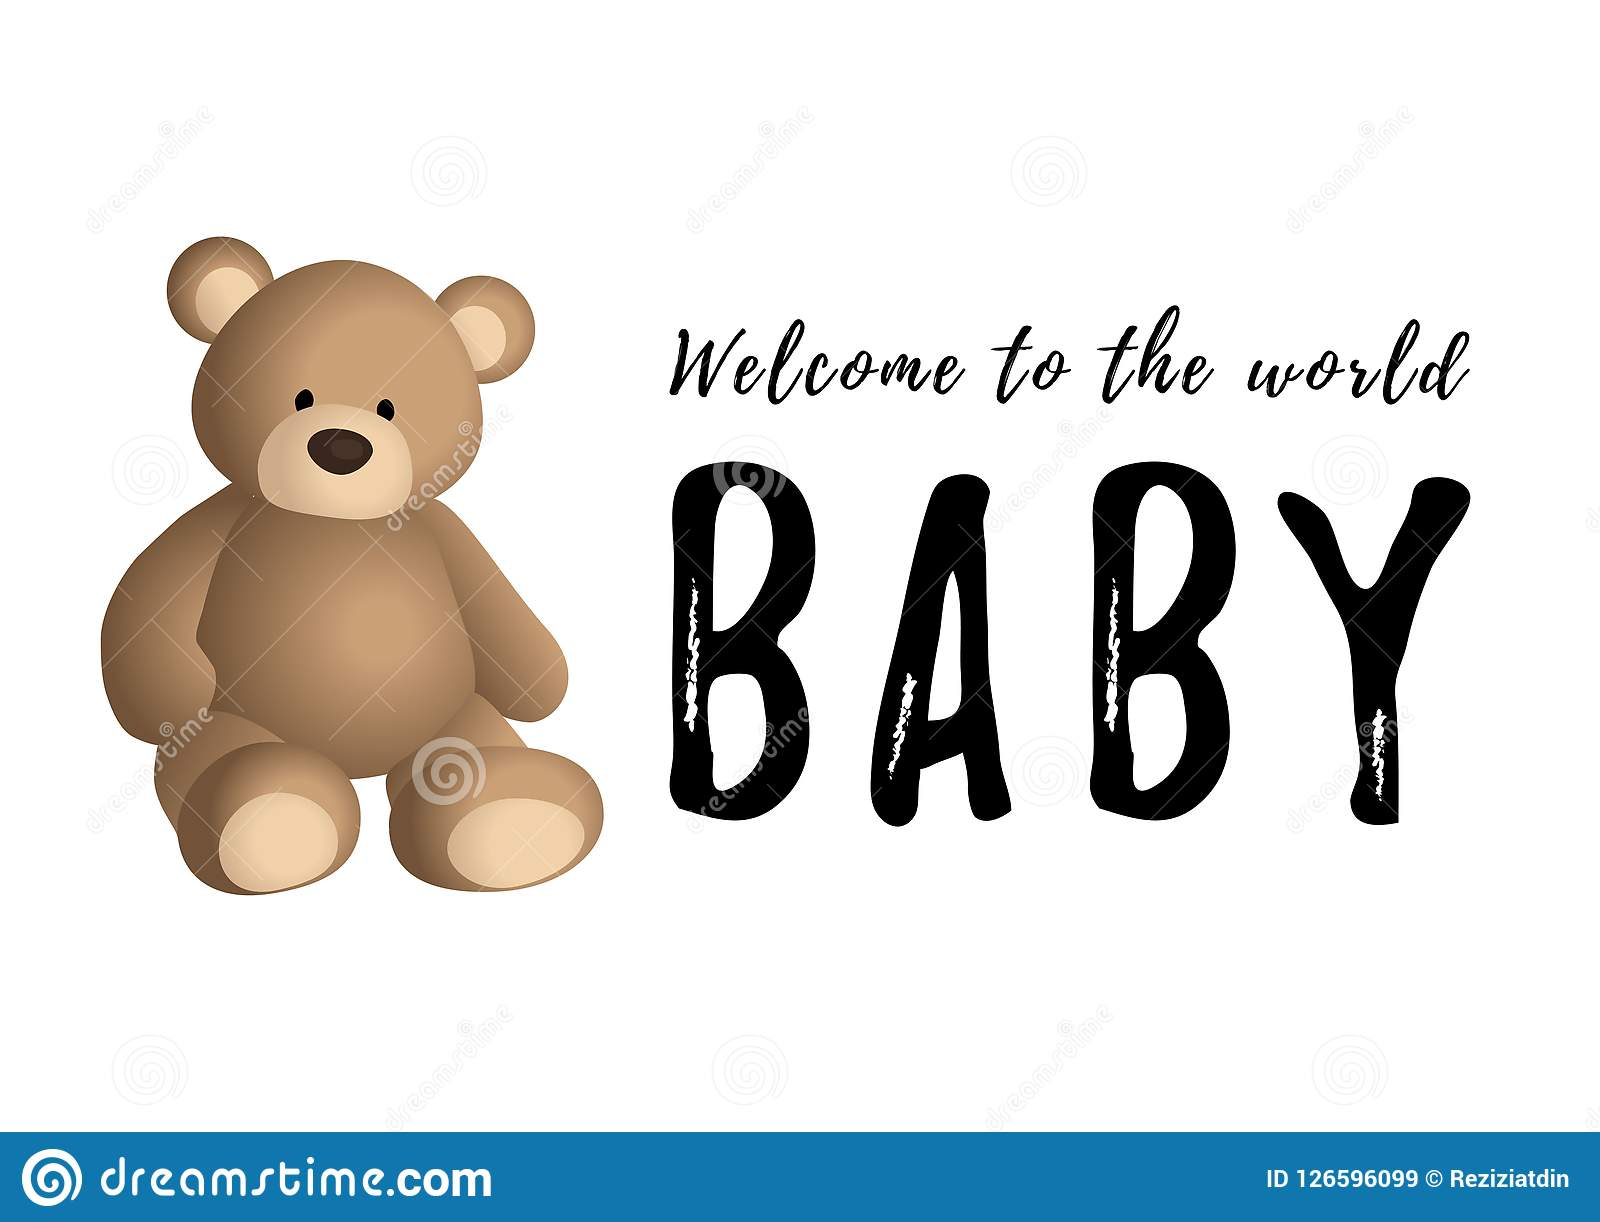 Calligraphy Lettering Of Welcome To The World Baby In Black And Brown Bear On White Background Stock Vector Illustration Of Cheerful Inscription 126596099